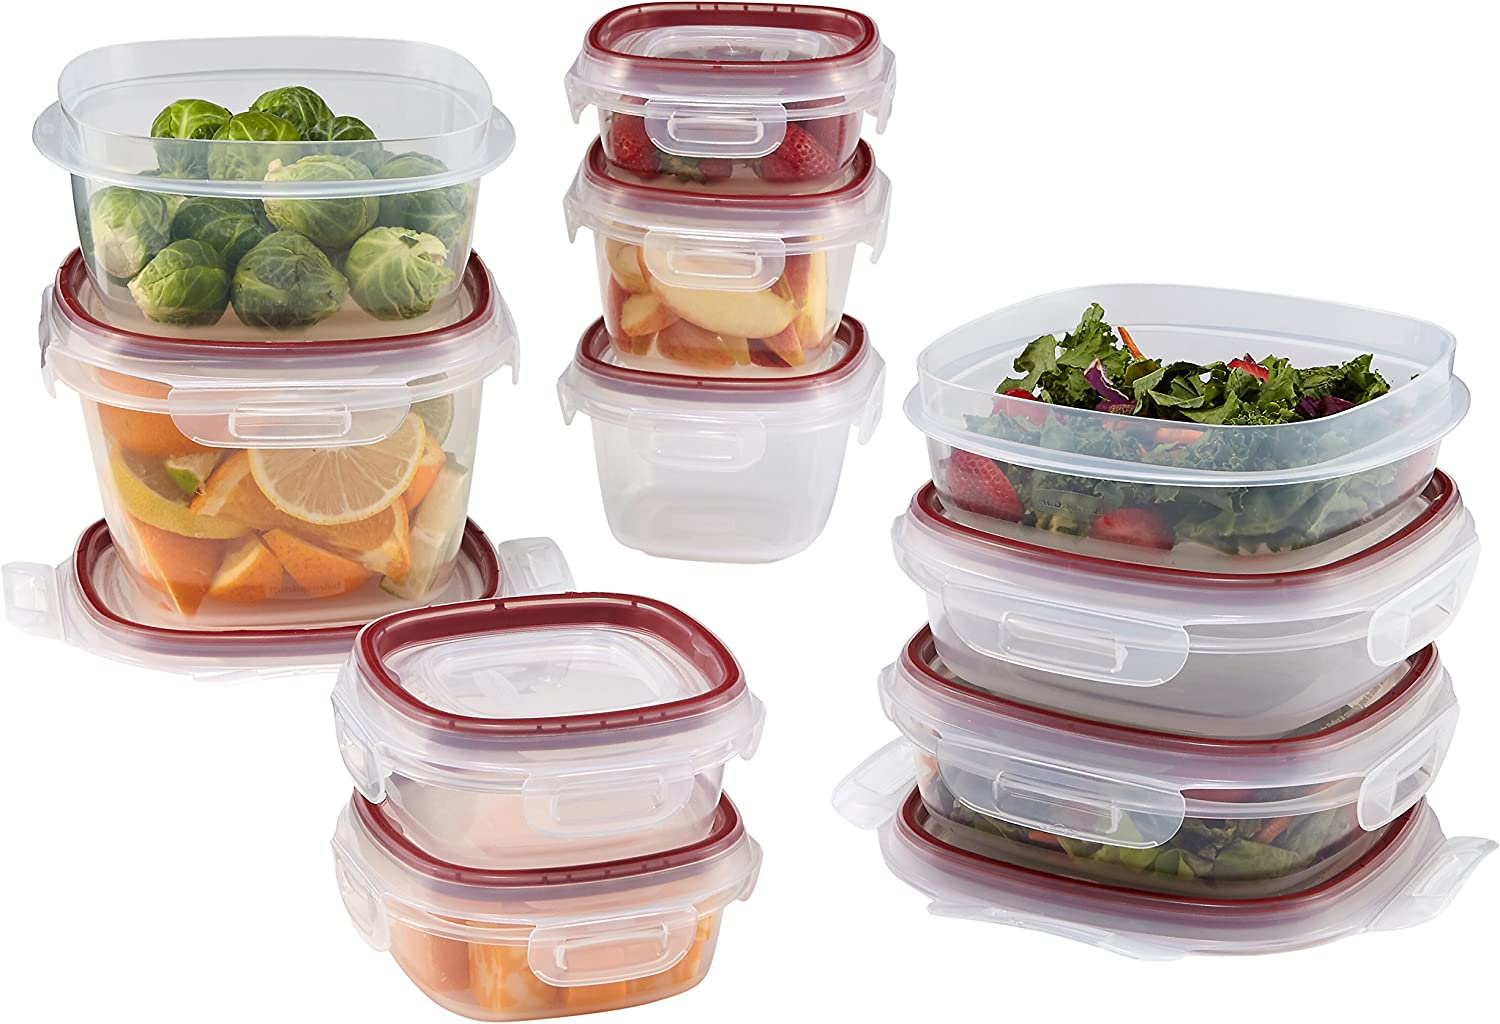 Rubbermaid Lock-Its Food Storage Containers with Easy Find Lids, Racer Red, 20-Piece Set 1842121